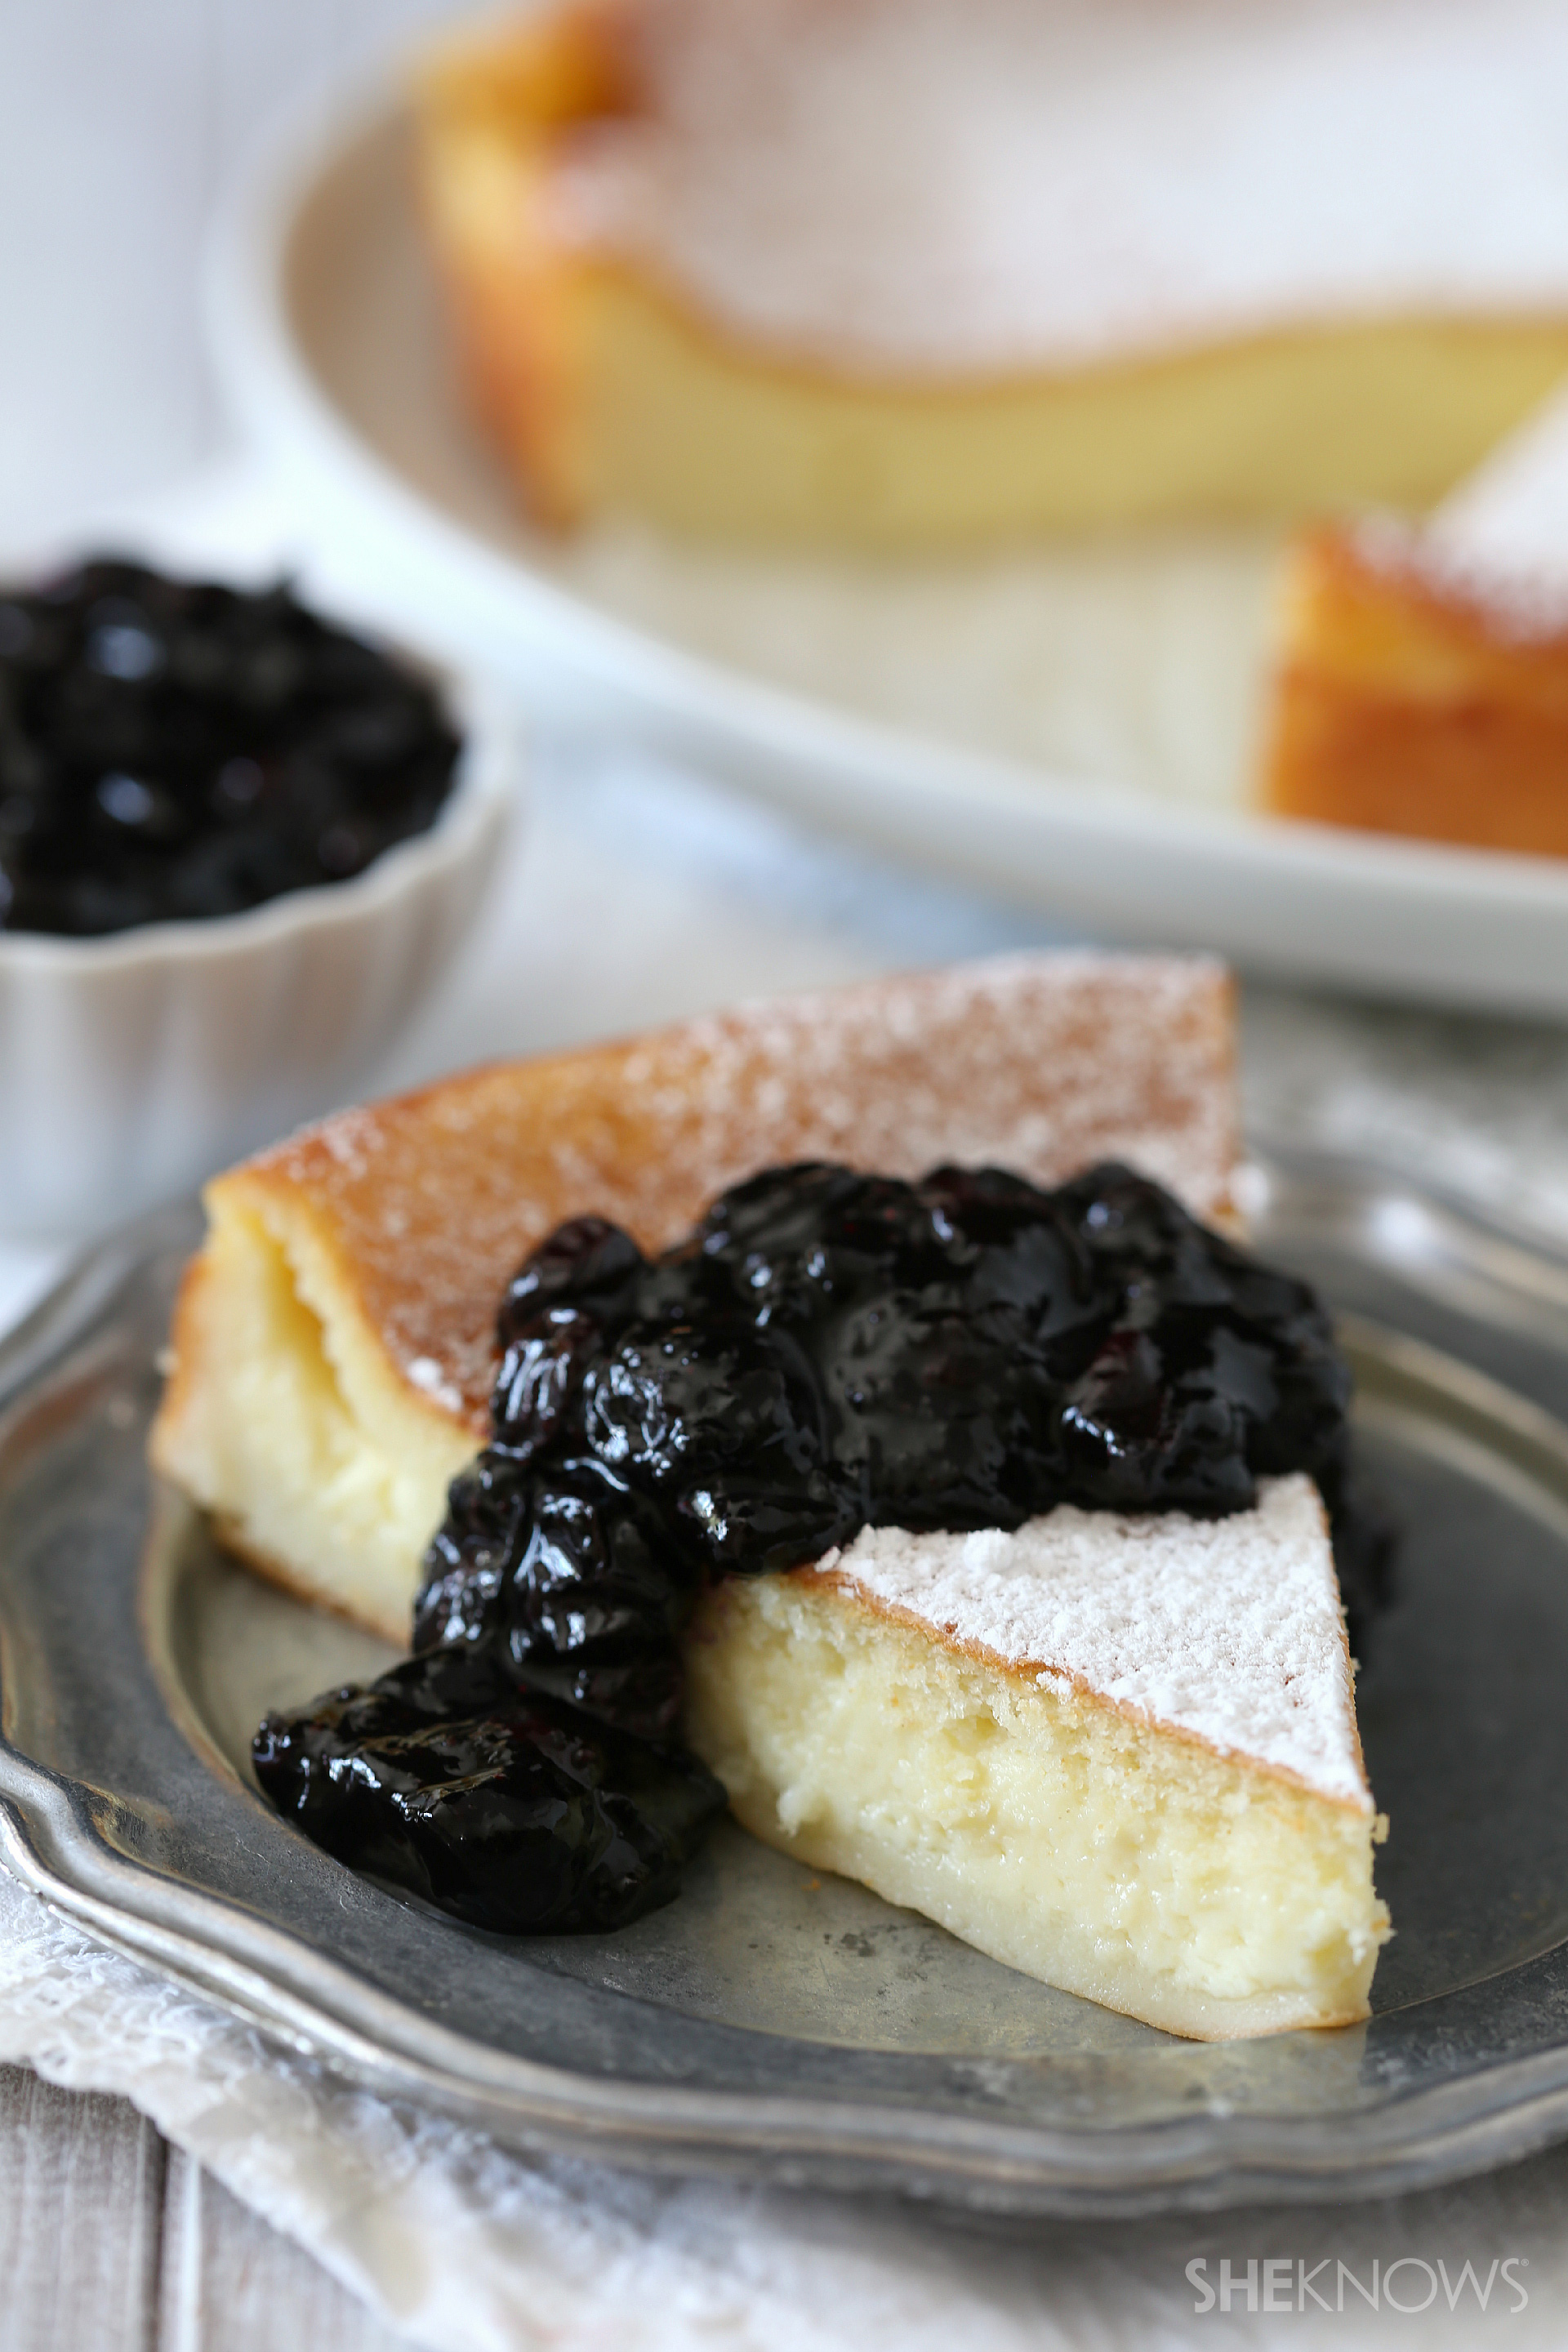 Magic cake topped with fresh berry compote